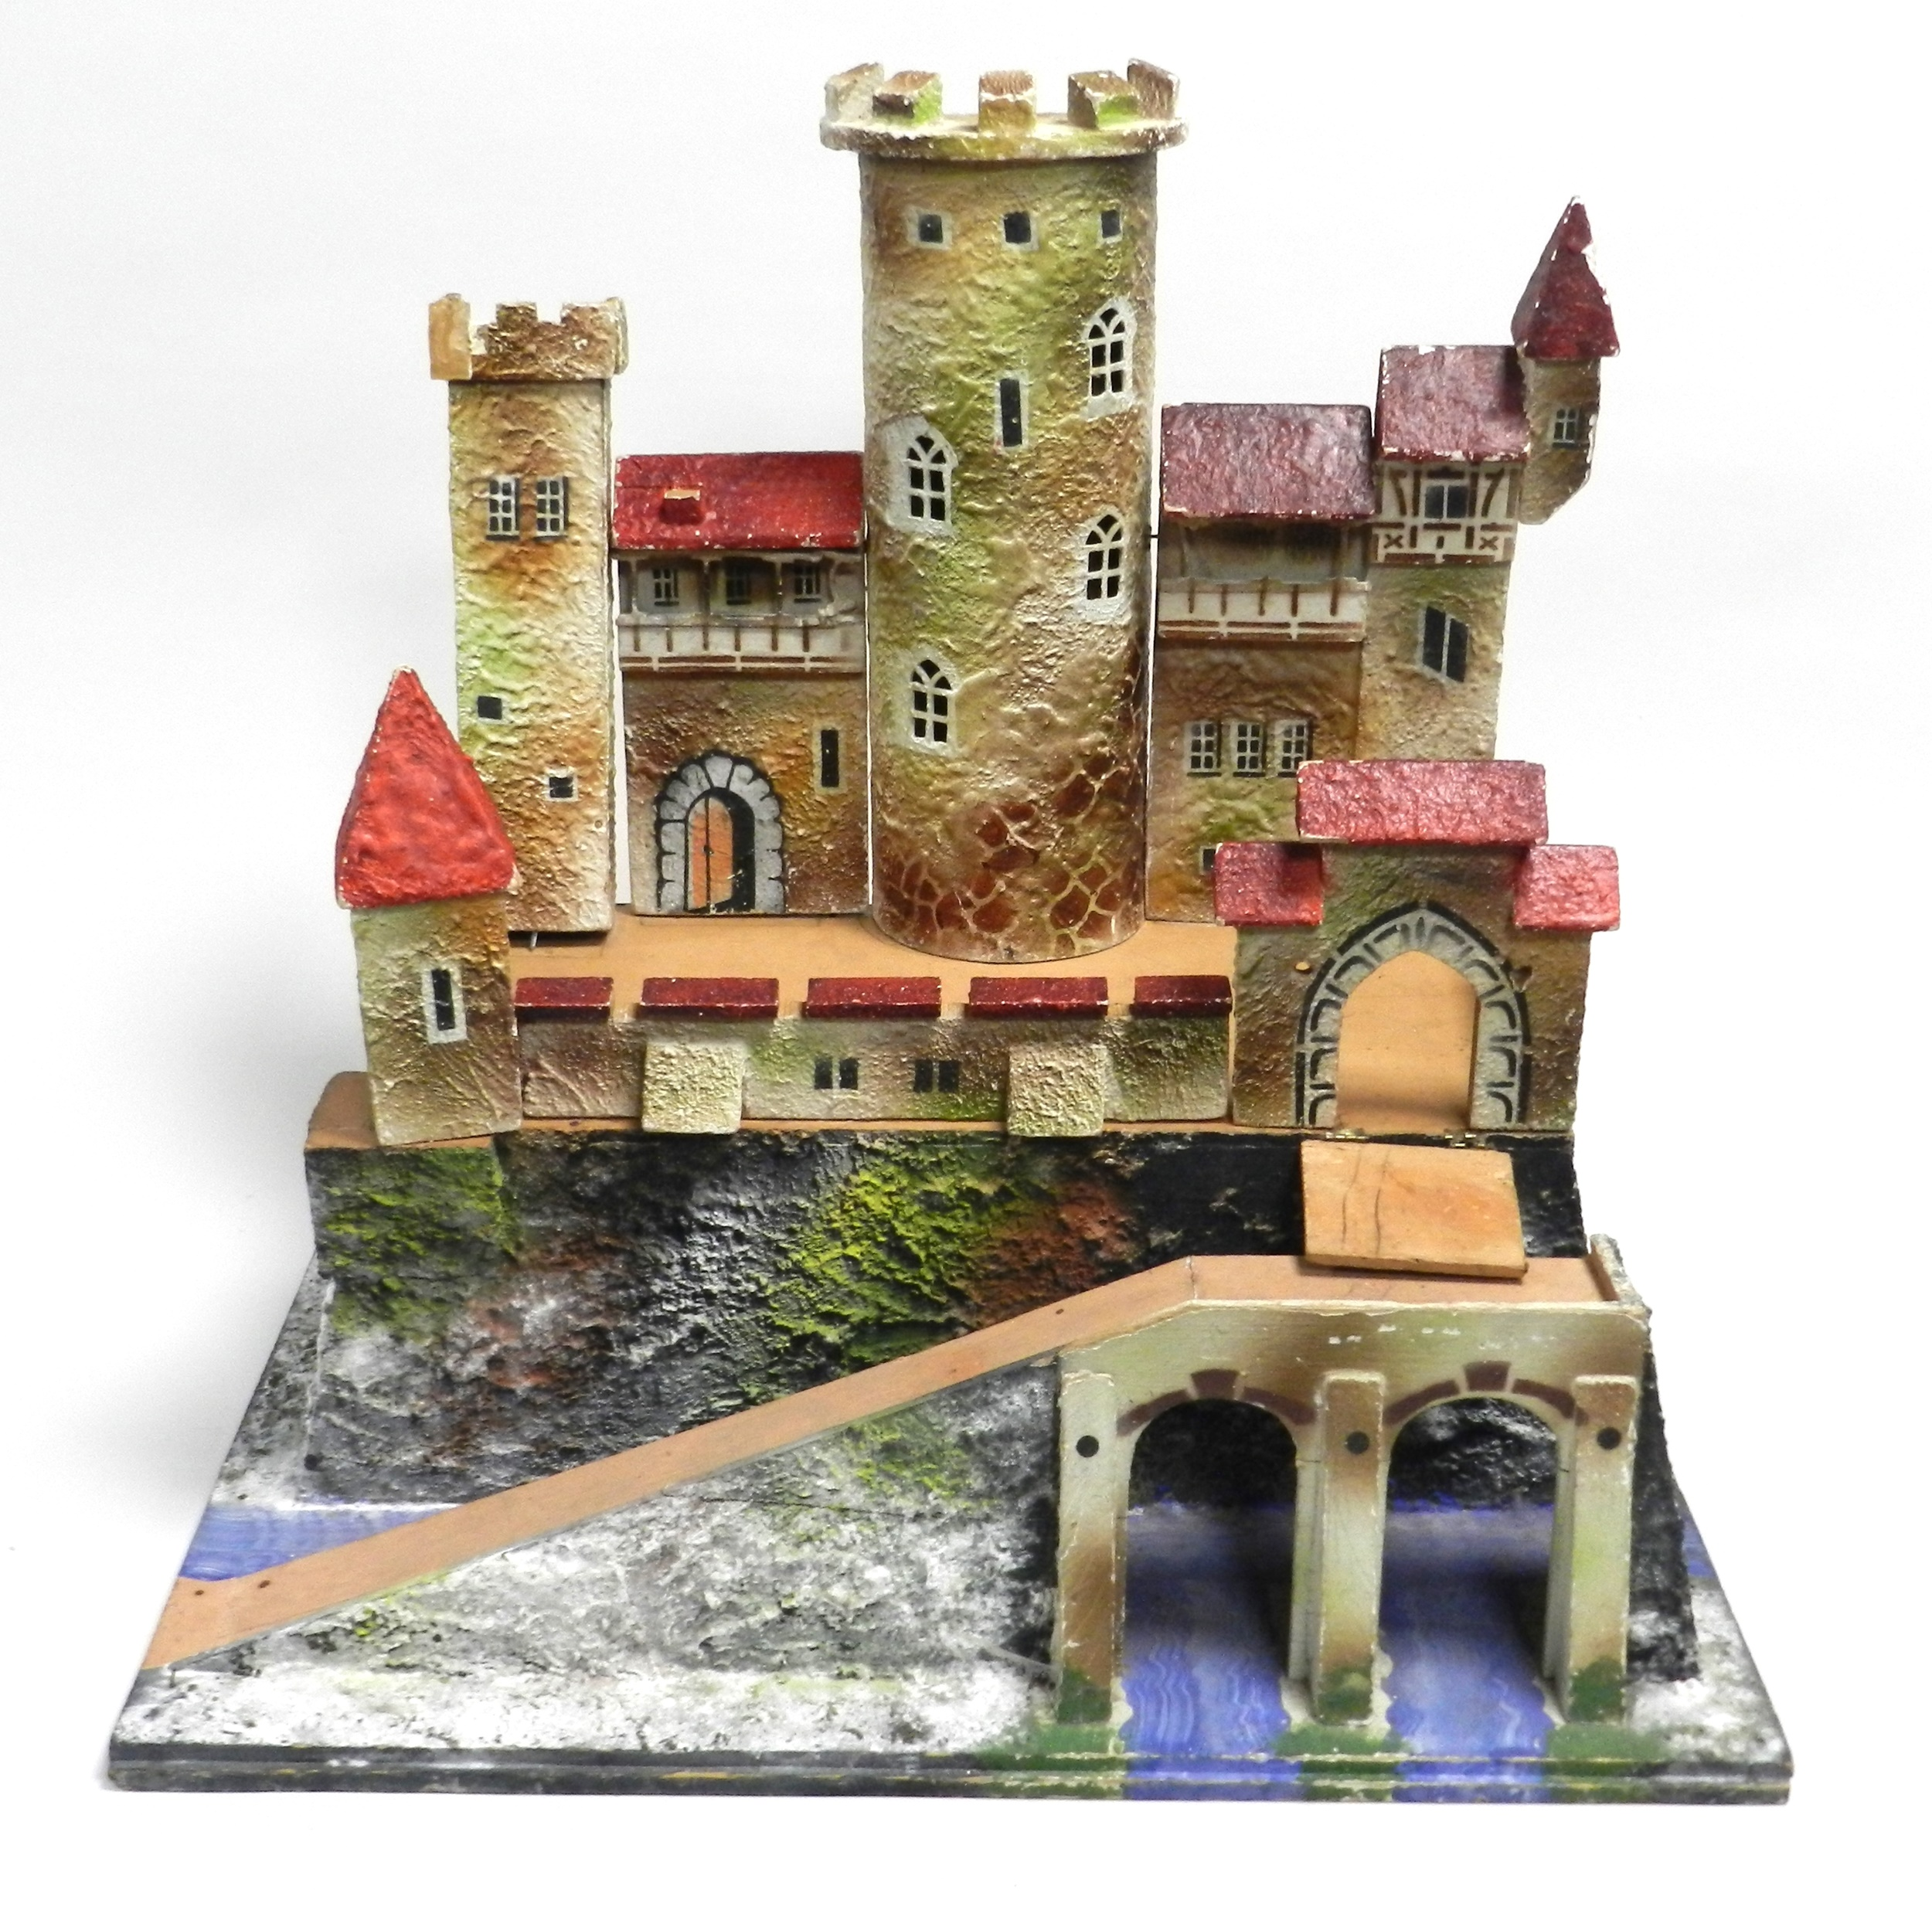 An early-mid 20th century wooden model of a castle